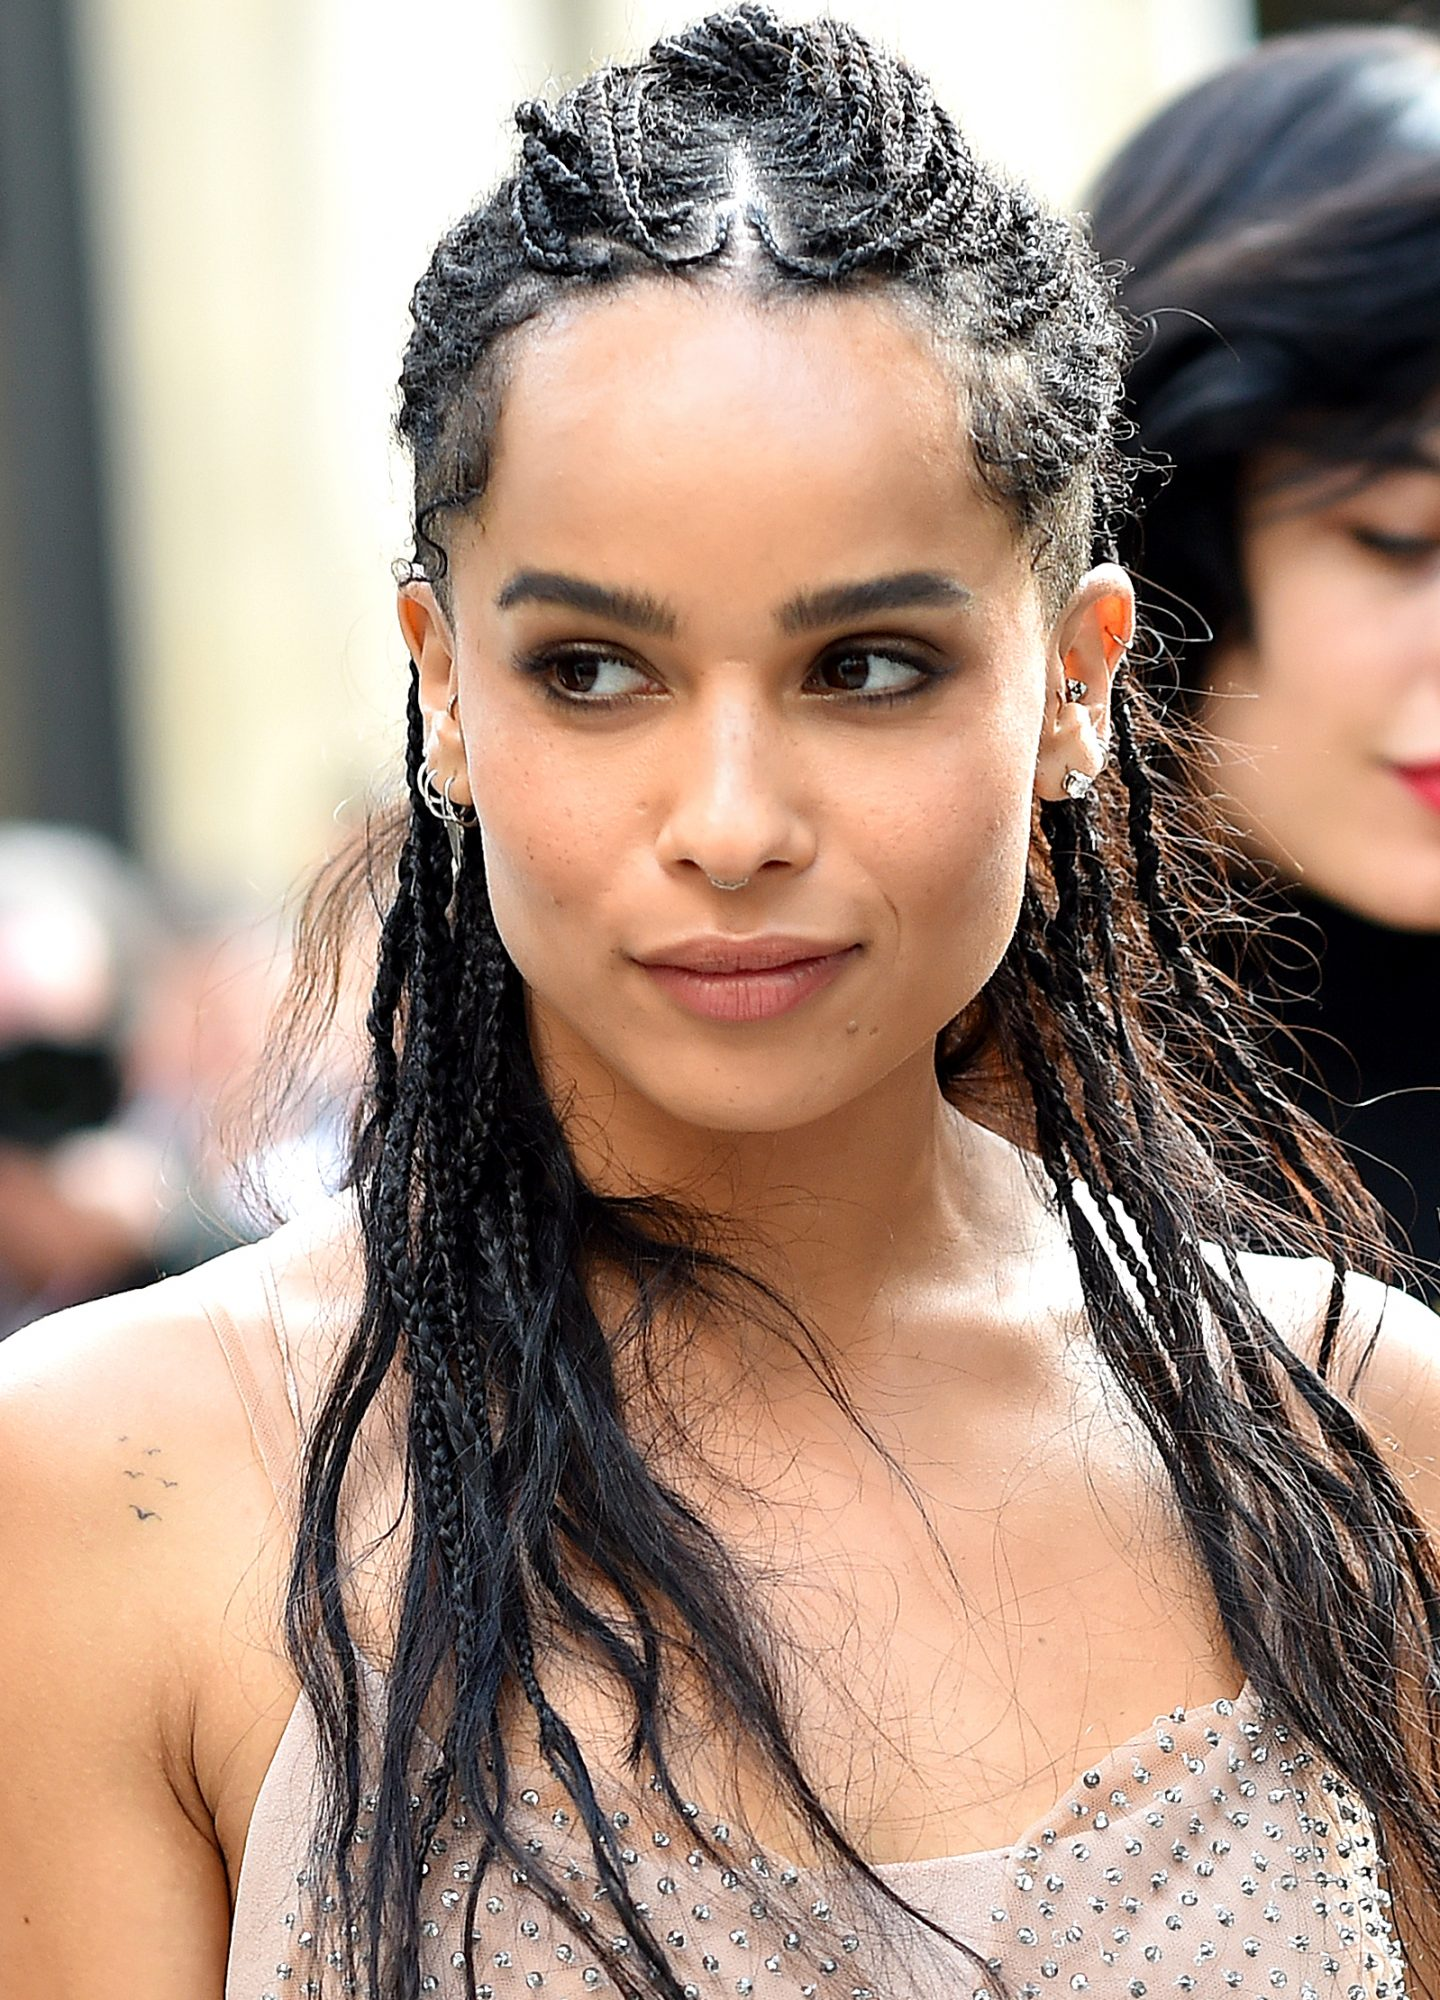 Zoe Kravitz Hair Transformation - LEAD